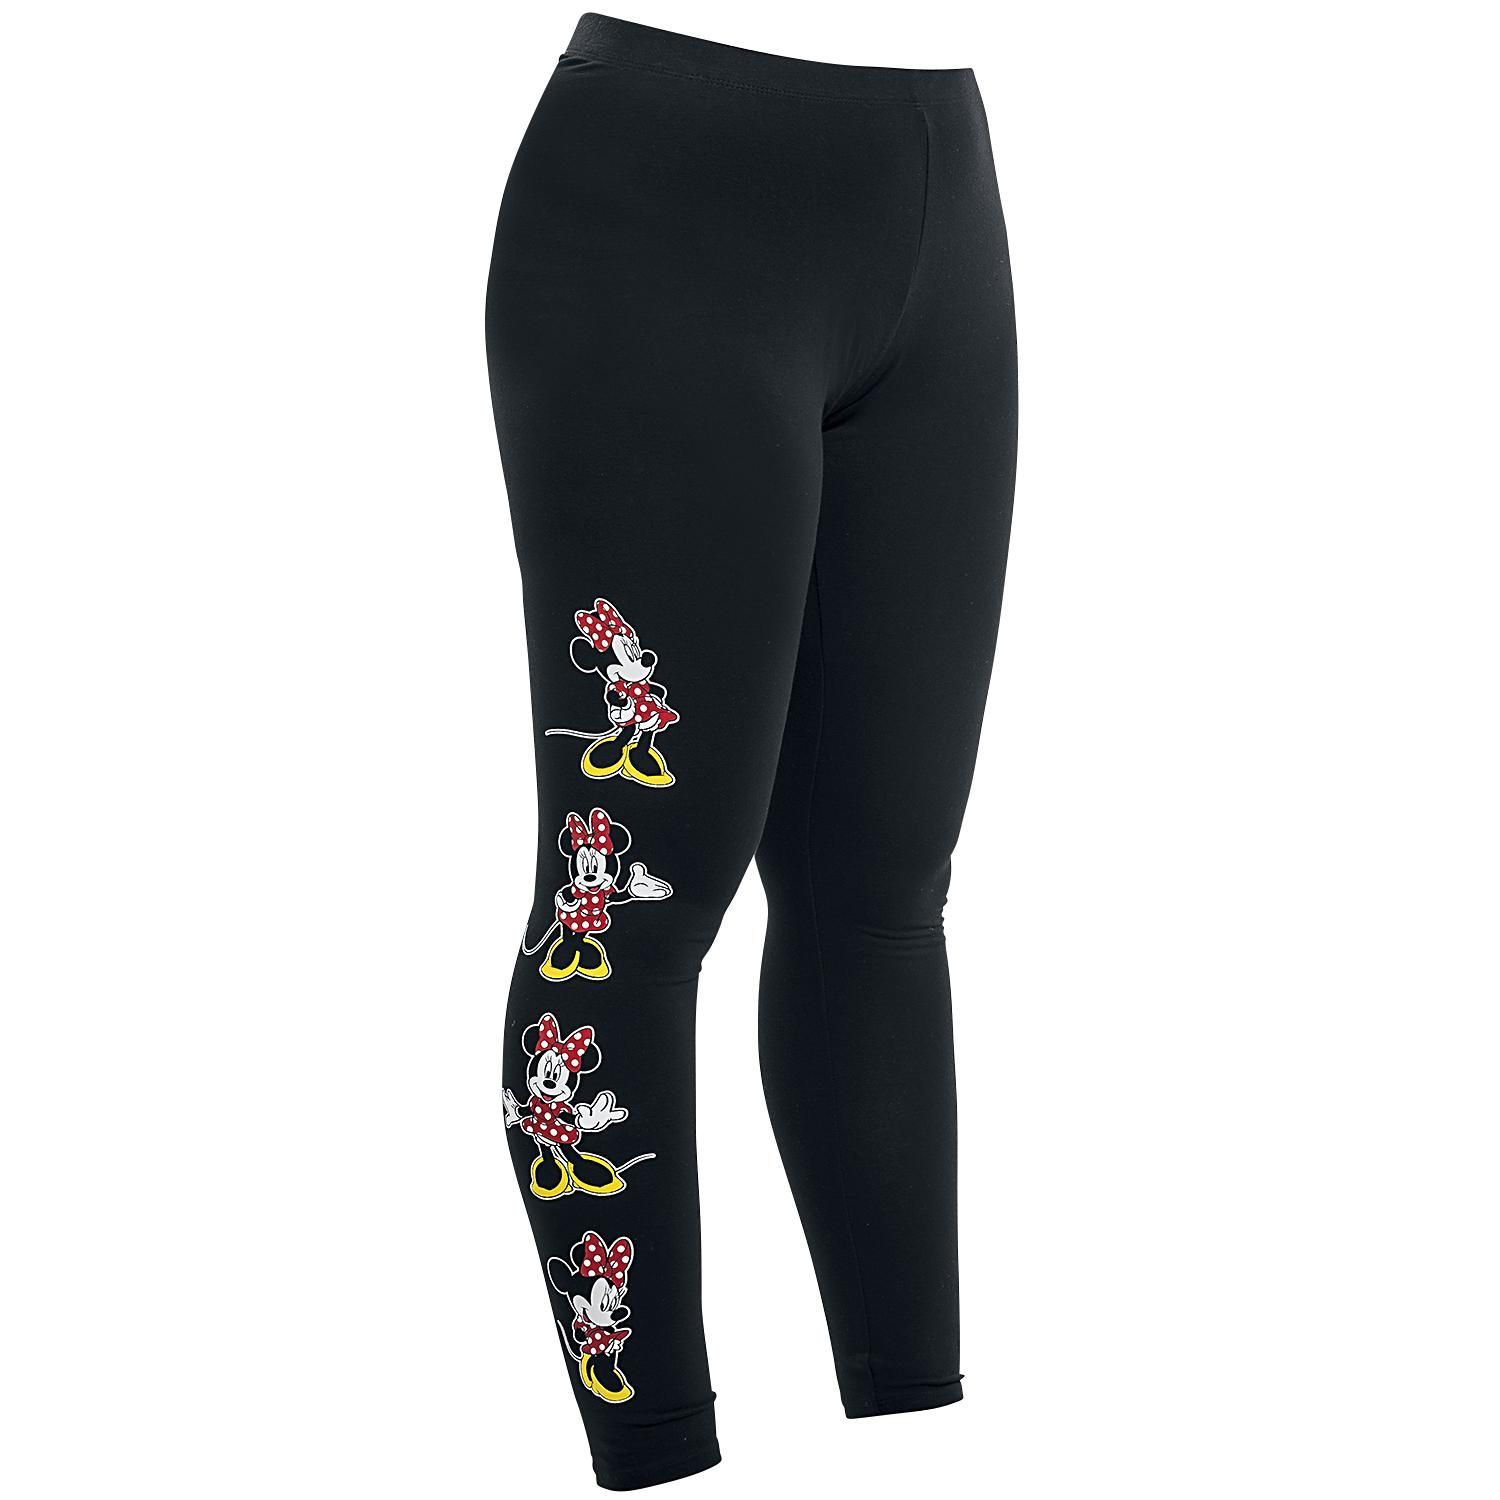 Minnie Poses - Leggings by Mickey & Minnie Mouse